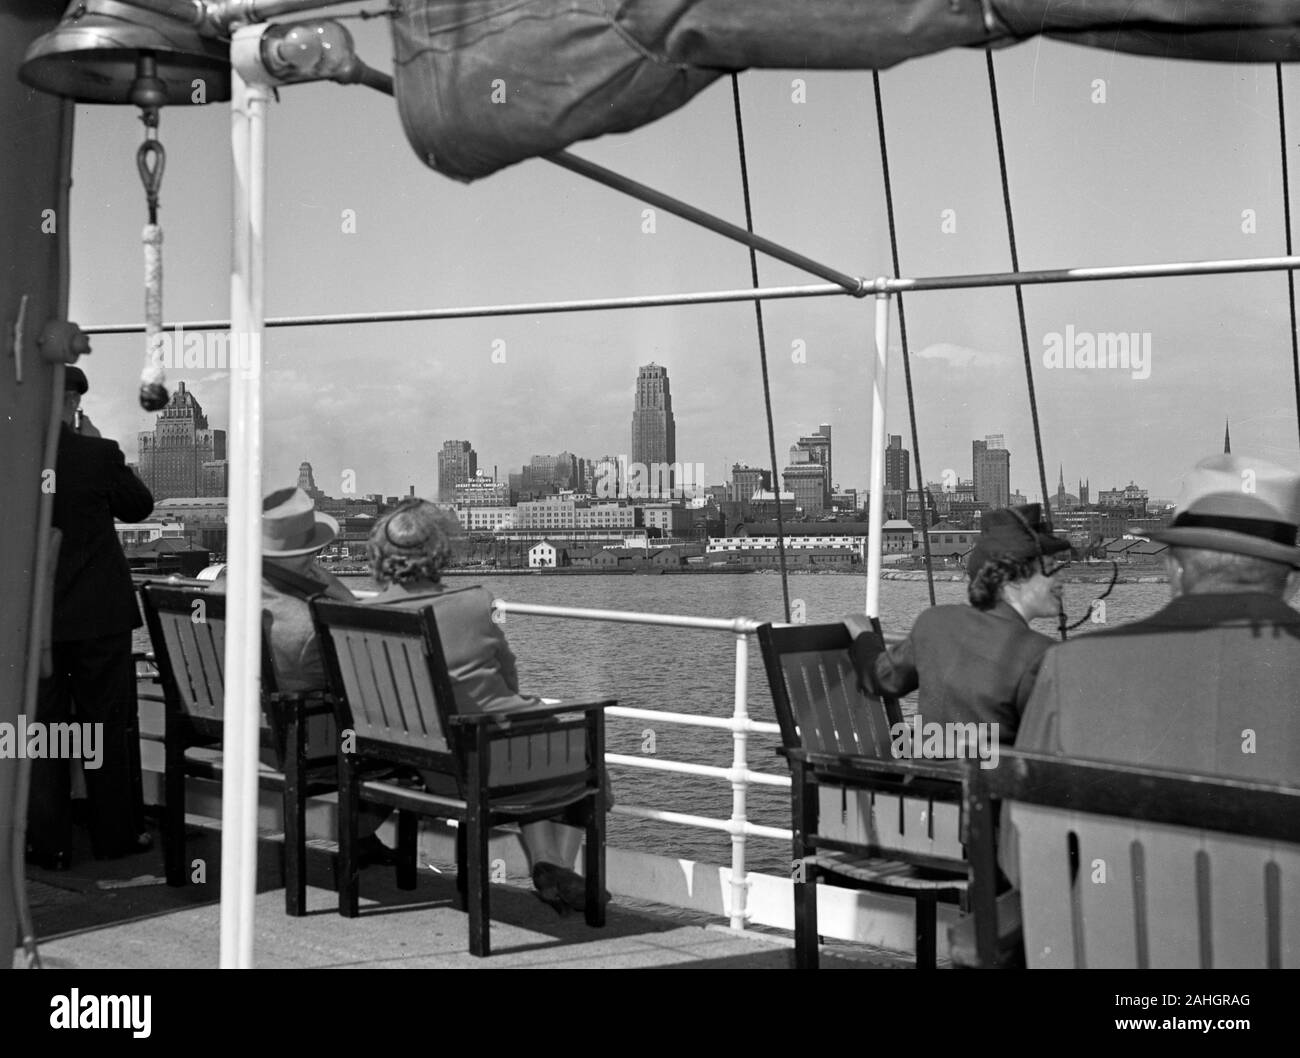 Passengers view the Toronto skyline from the deck of the passenger liner S.S. North America, 1942 Stock Photo